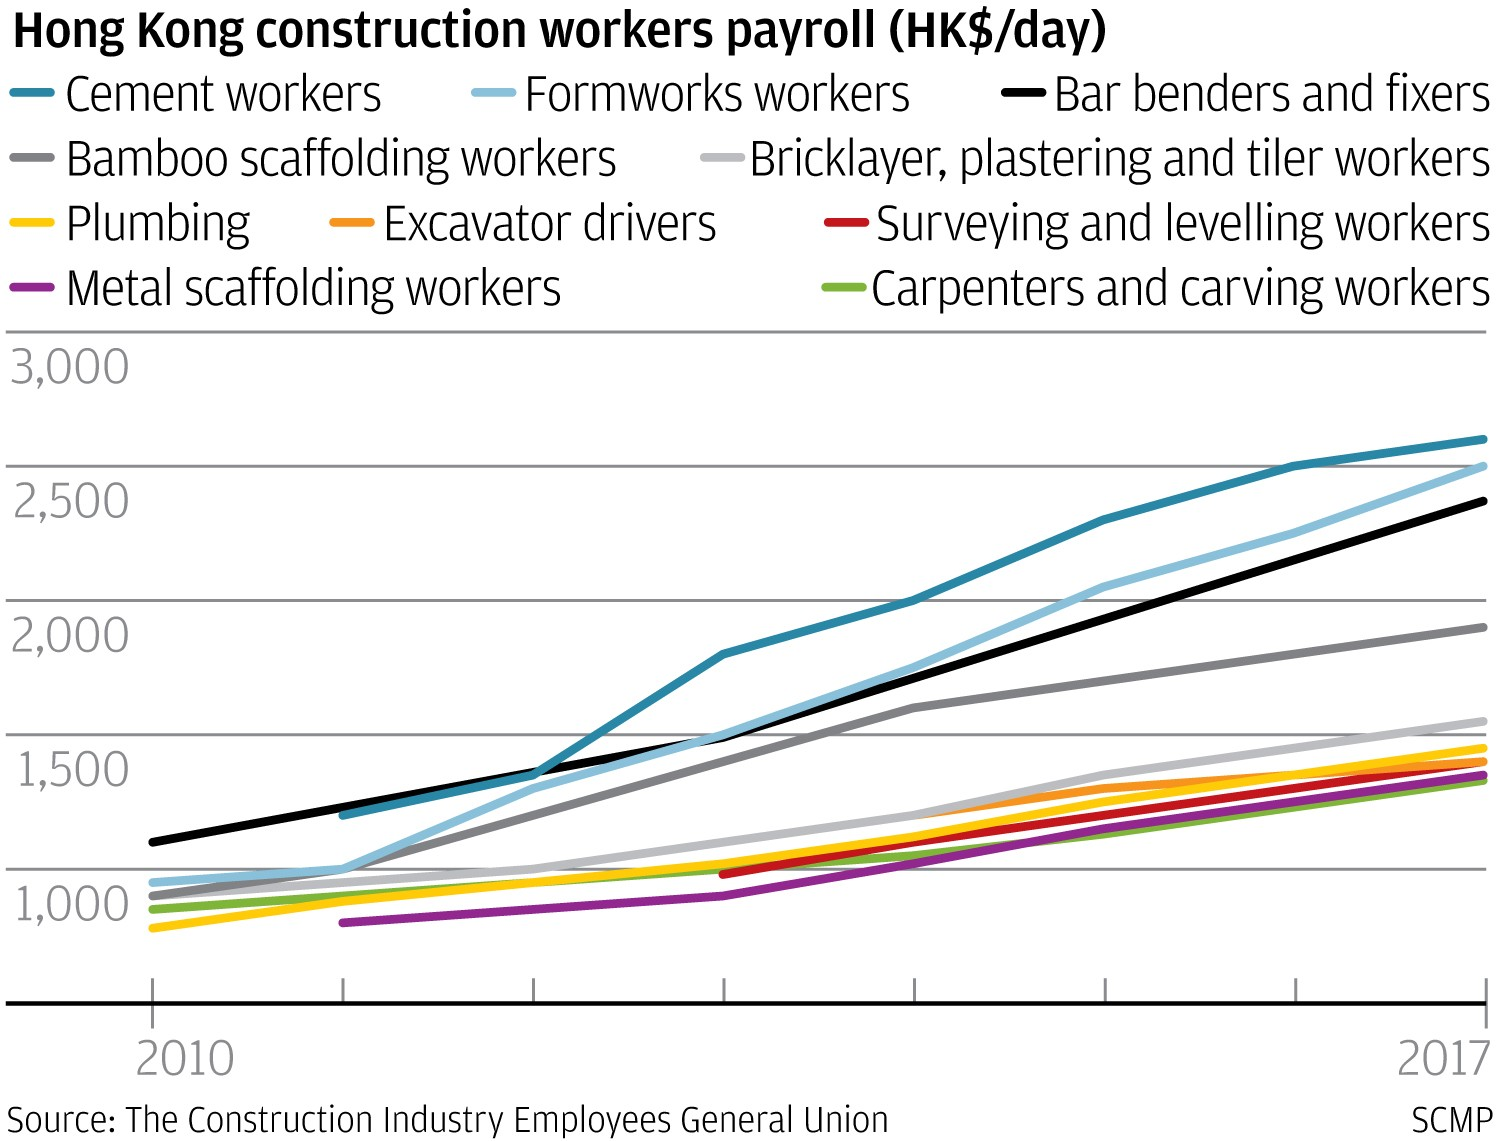 HK$2,600 a day: Hong Kong construction workers get pay rise